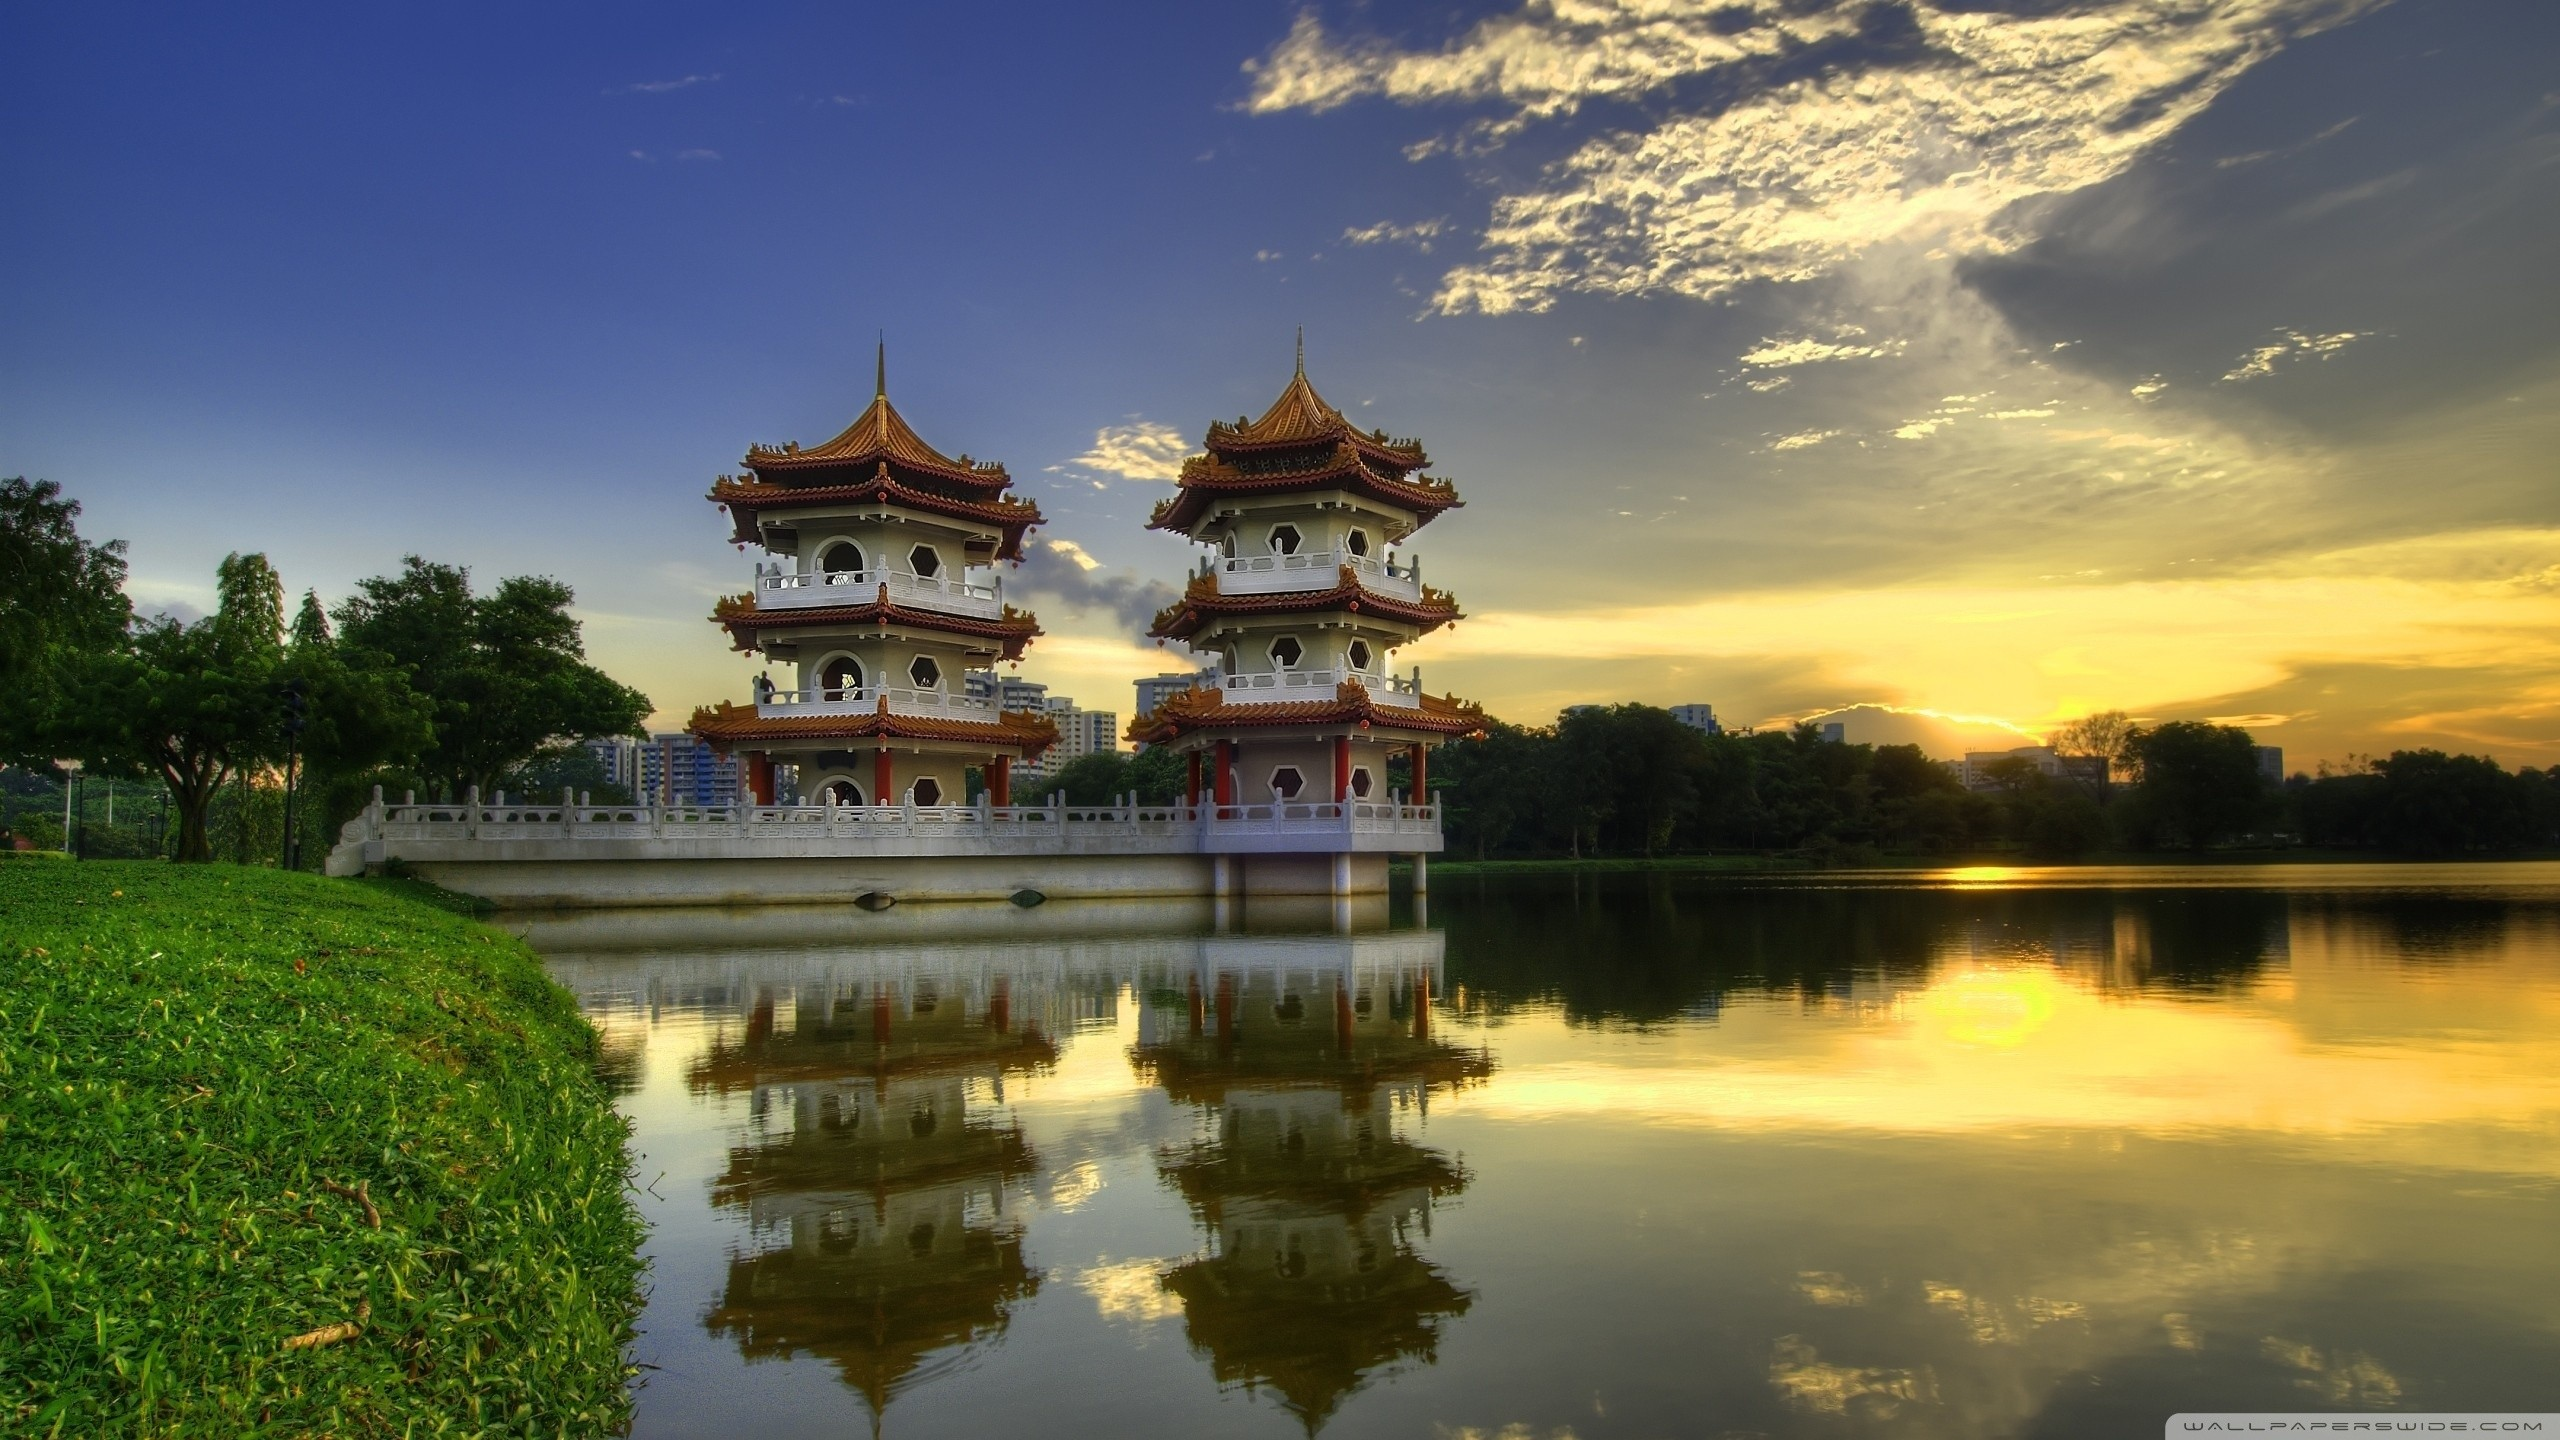 Res: 2560x1440, Chinese Houses wallpaper Pin HD Wallpapers | Pin HD Wallpapers - Pictify -  your social art network